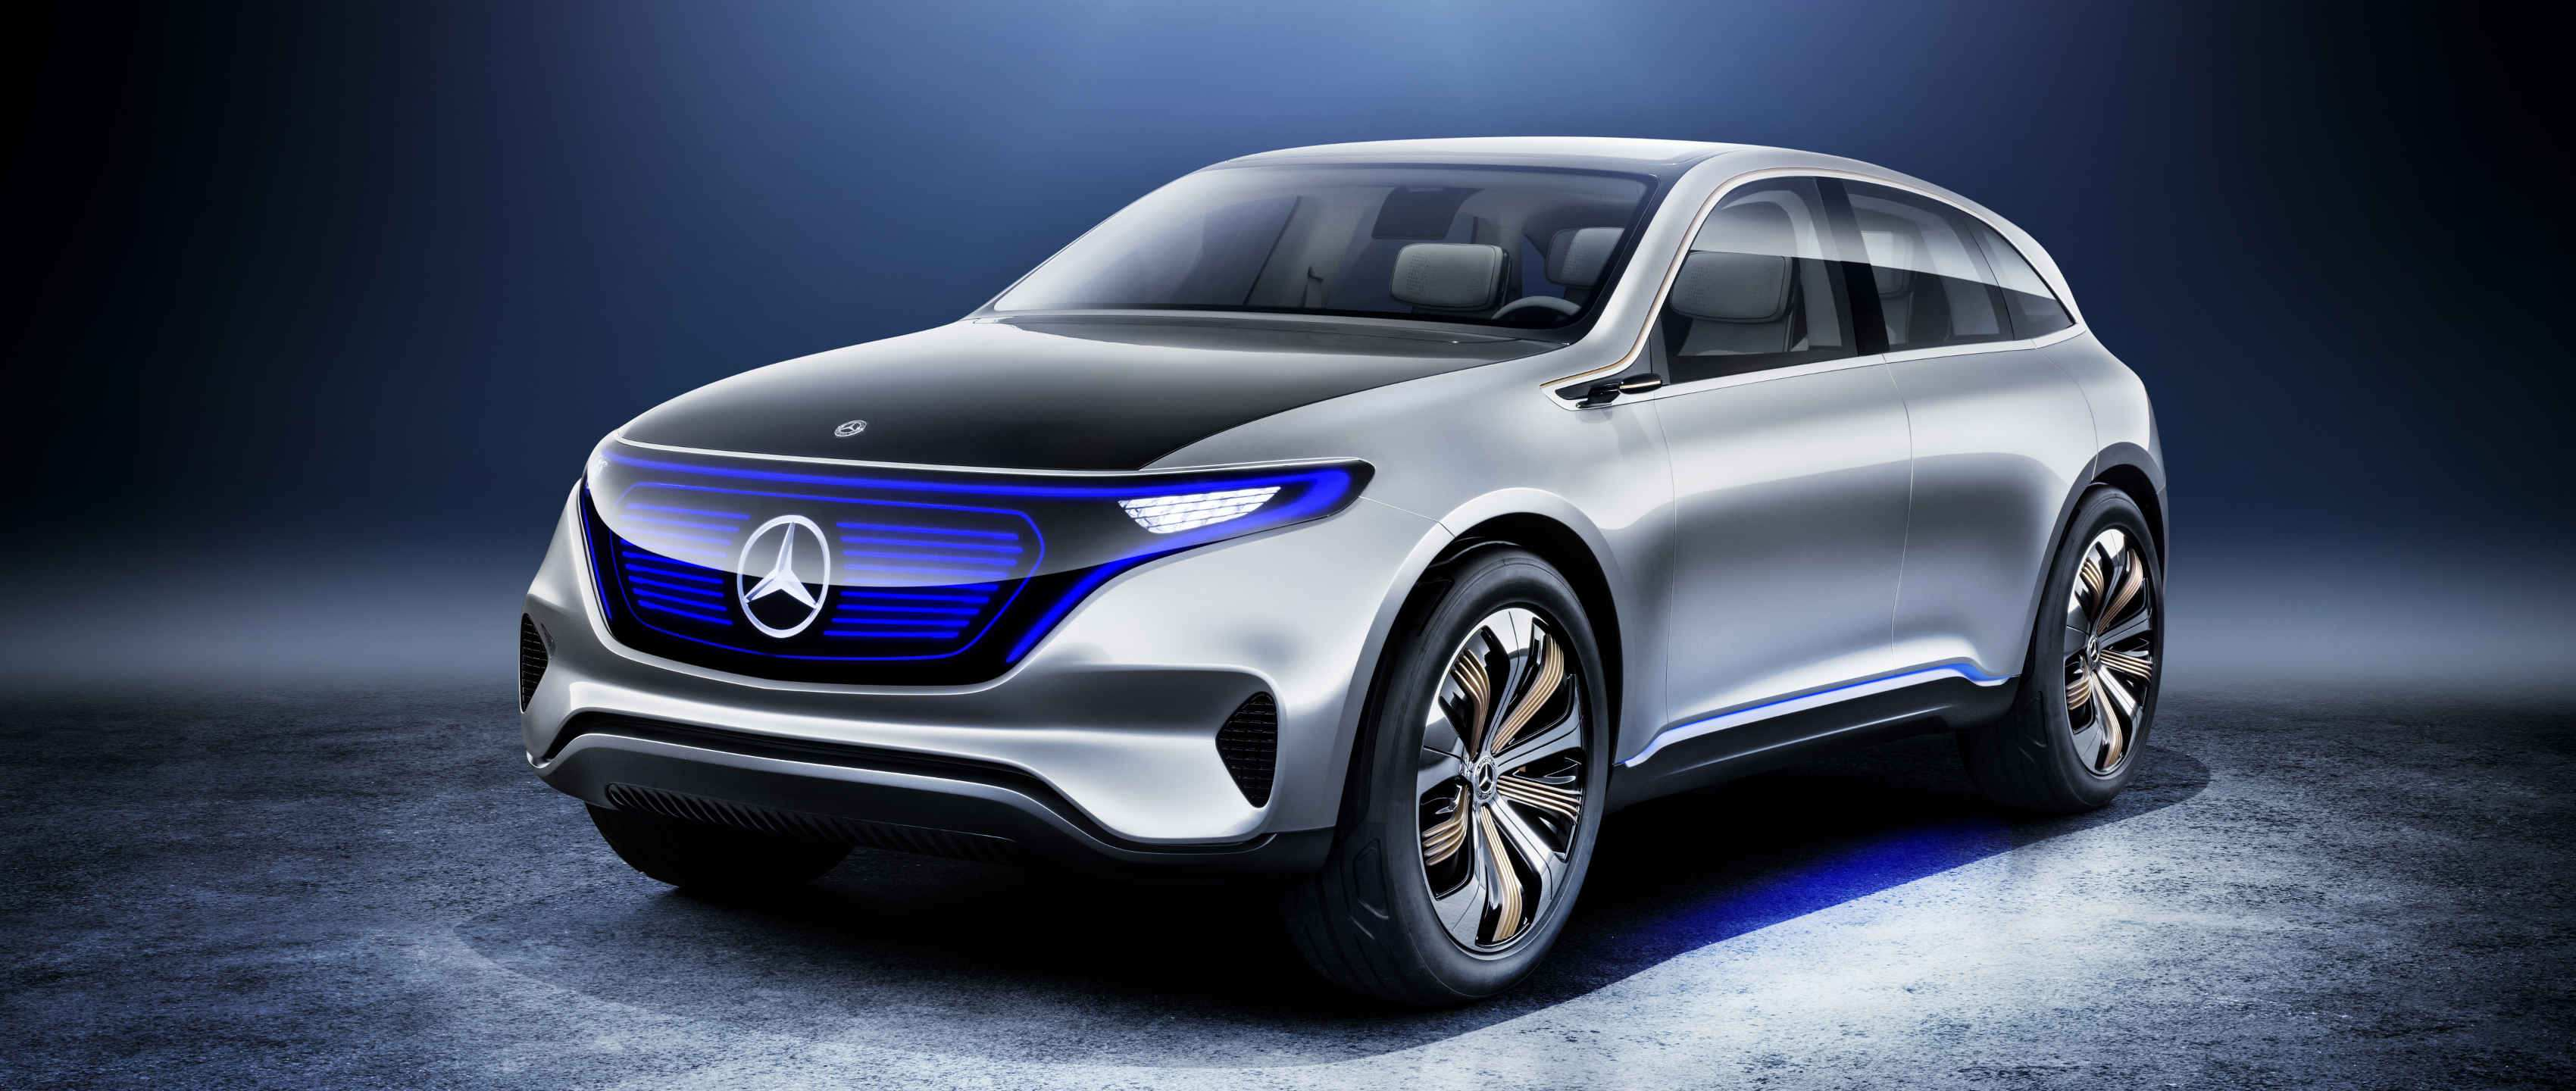 97 New The Mercedes Eq 2019 Price Reviews with The Mercedes Eq 2019 Price